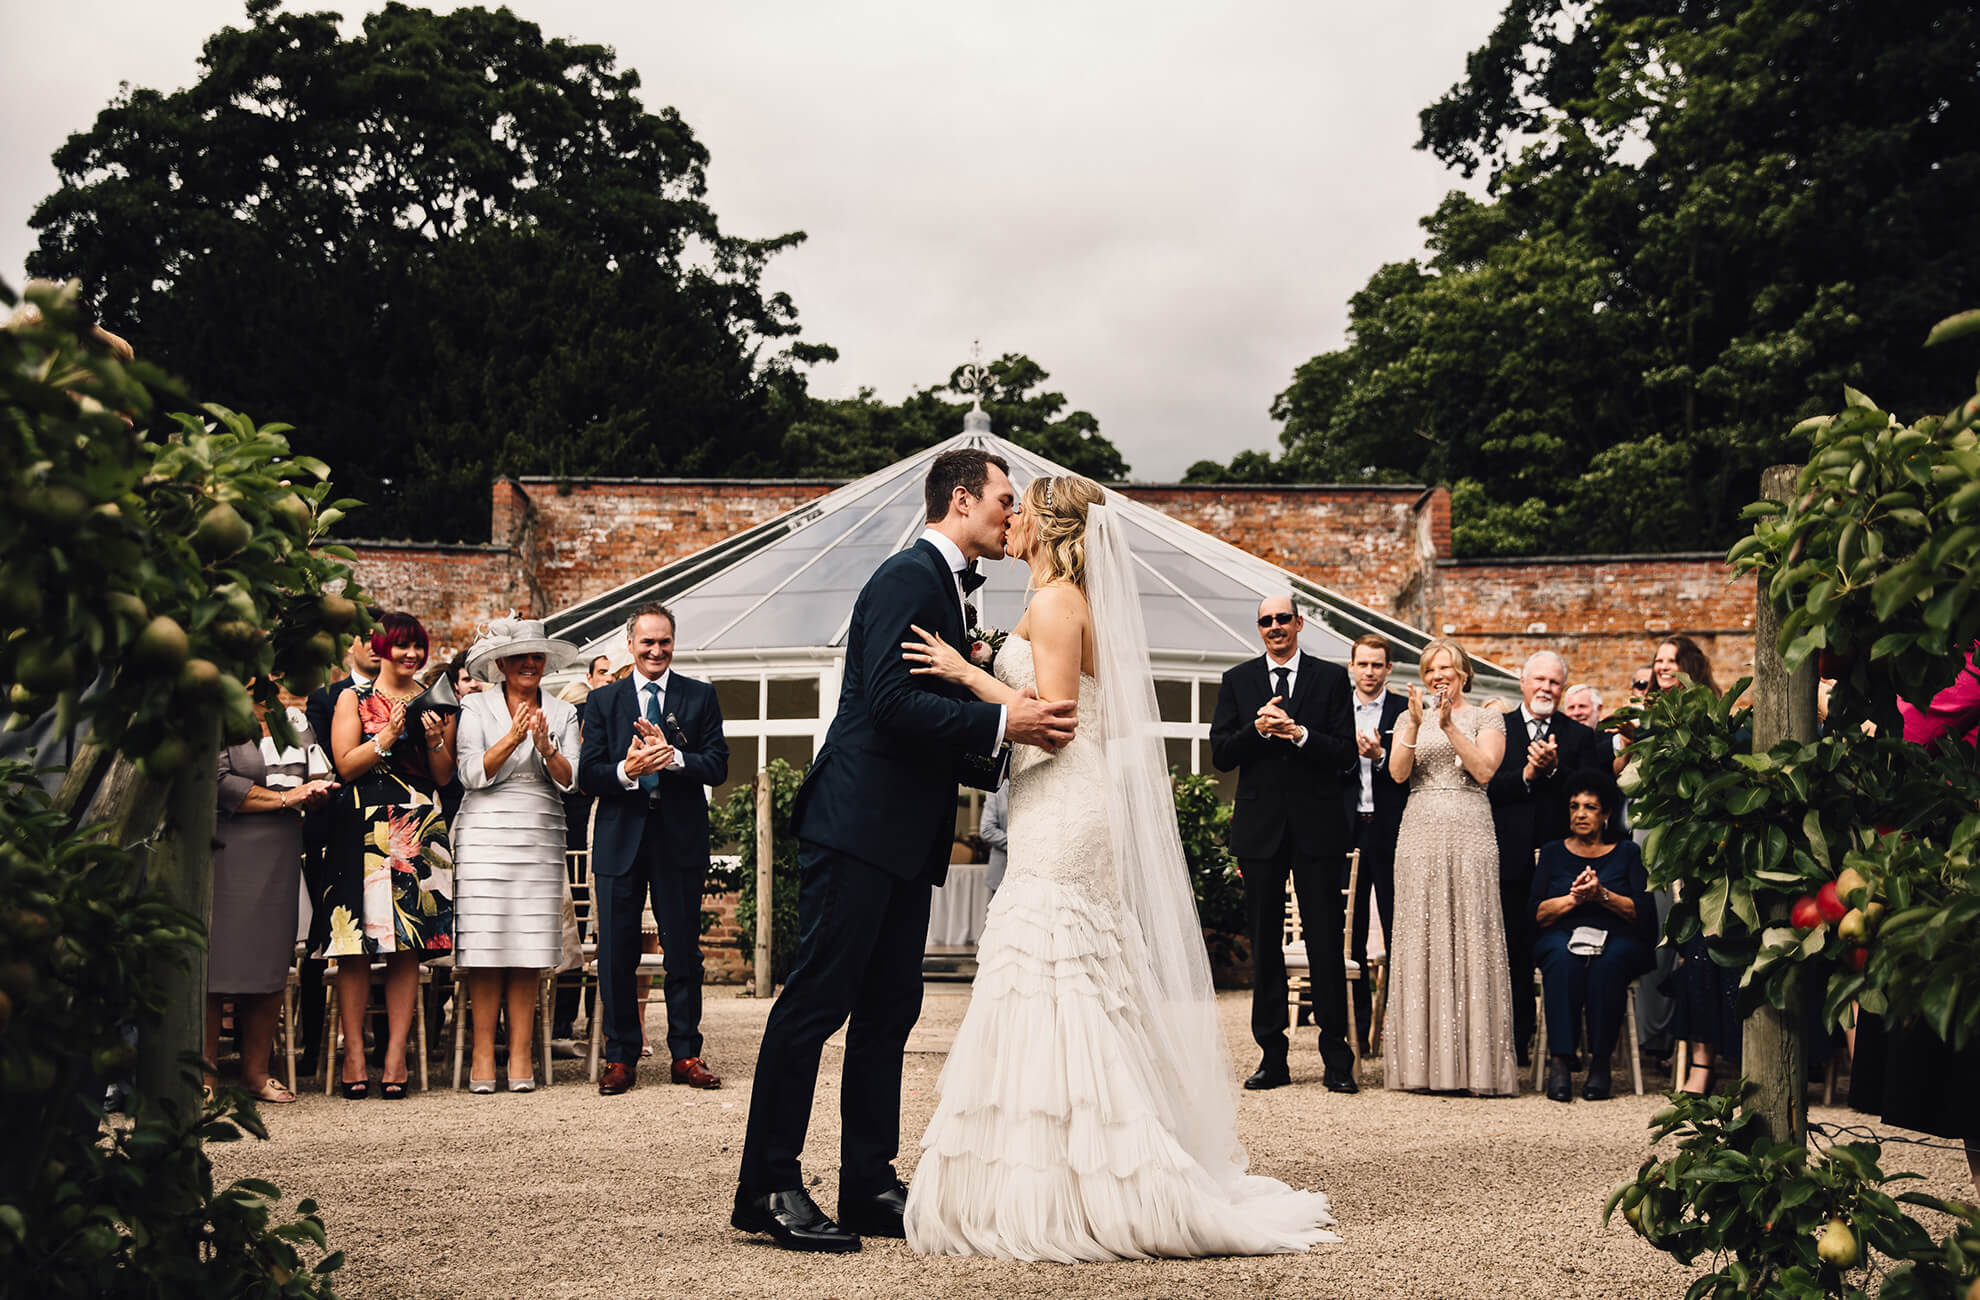 The bride and groom share a kiss in front of the Glasshouse at Combermere Abbey on their wedding day